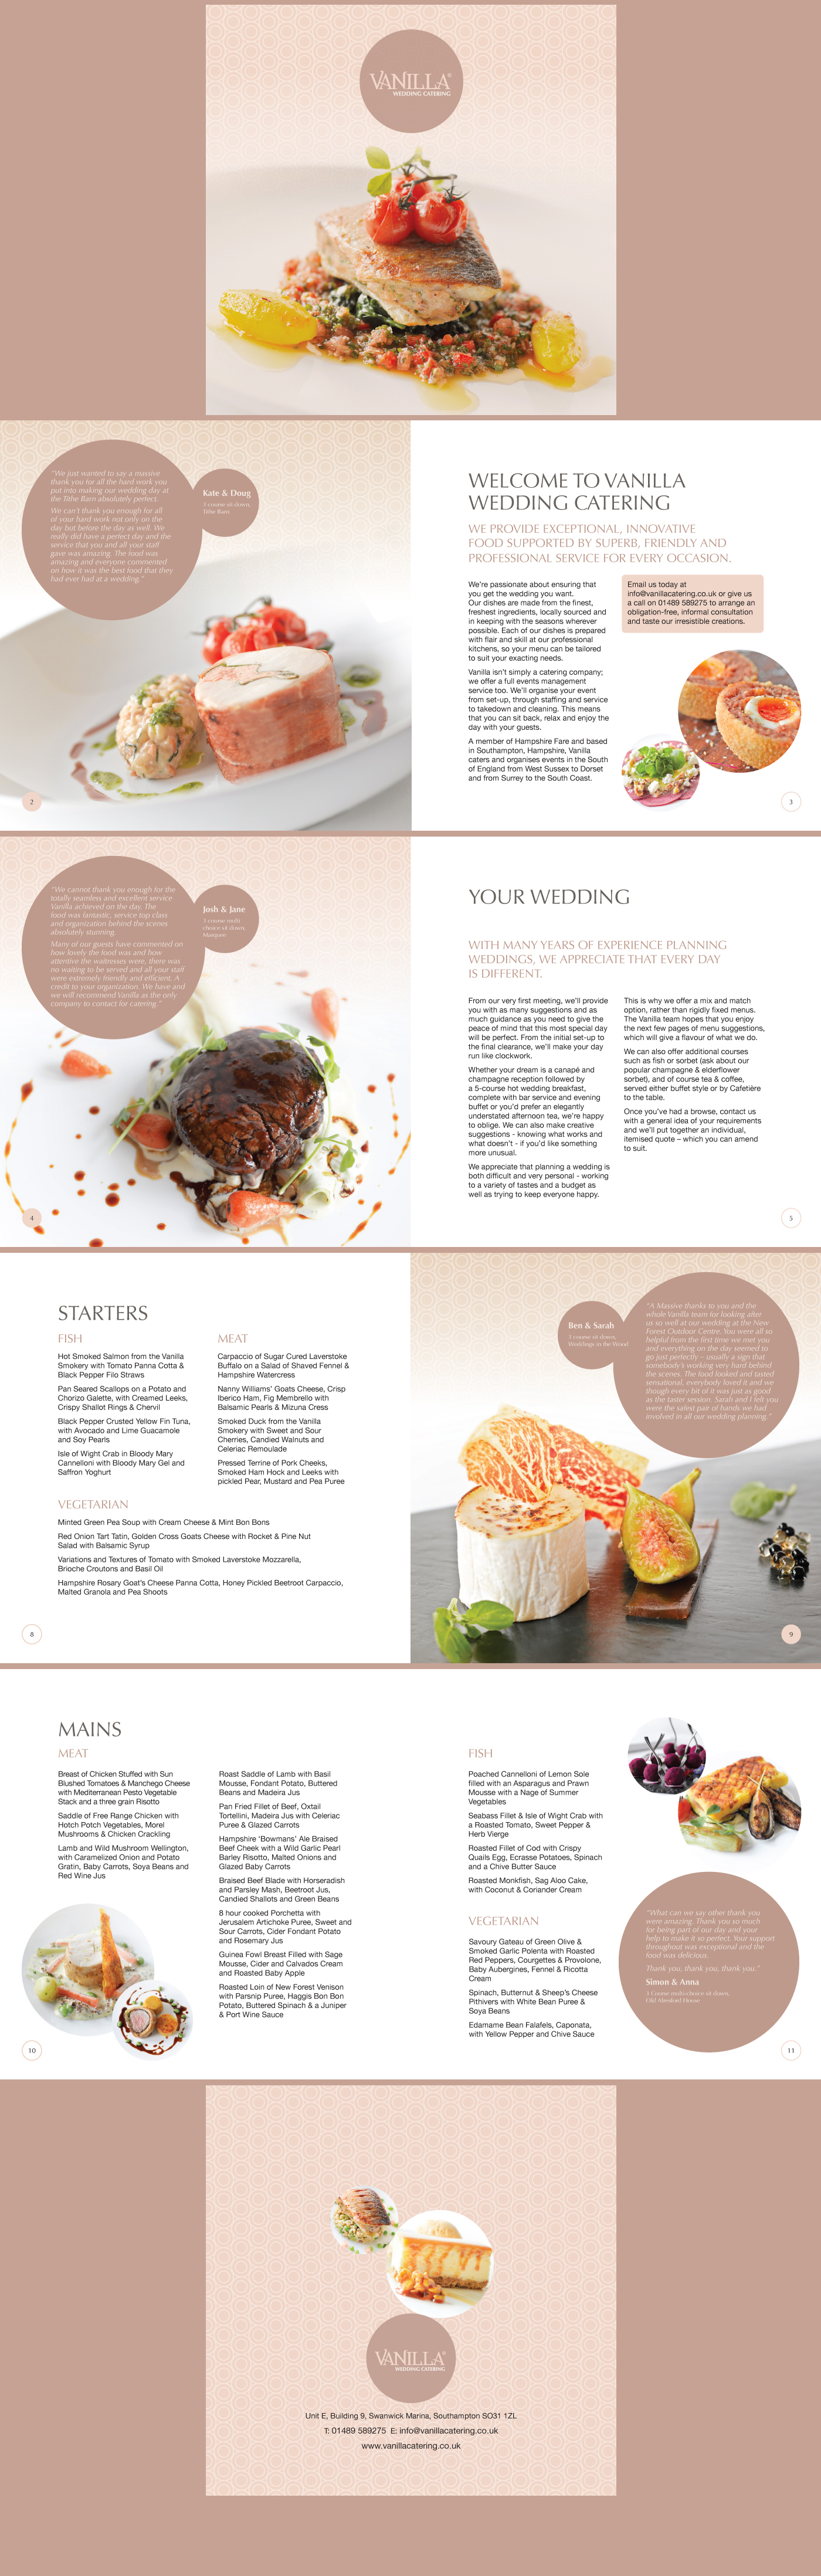 Vanilla s new Wedding Catering brochure layout  Designed by www     Vanilla s new Wedding Catering brochure layout  Designed by  www trampolinedesign net